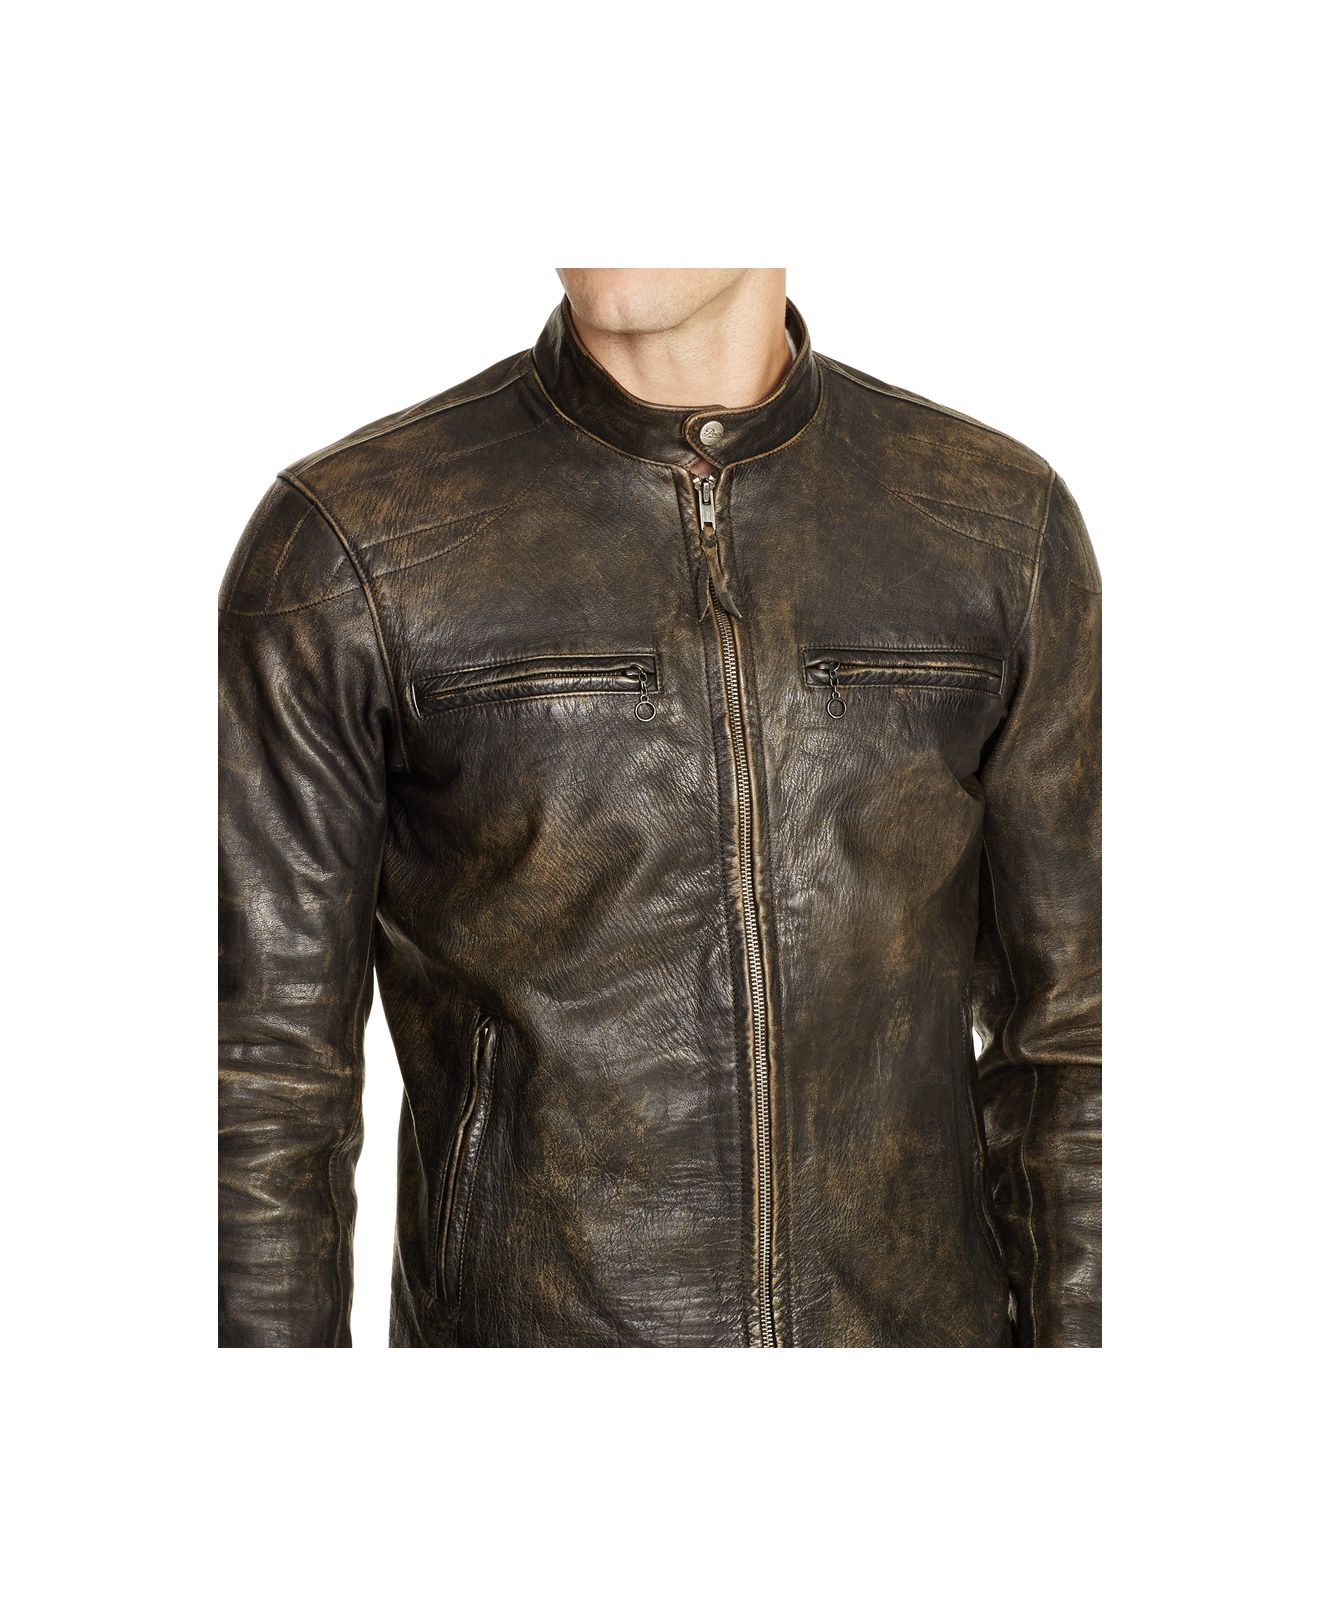 polo ralph lauren distressed leather jacket in brown for men | lyst